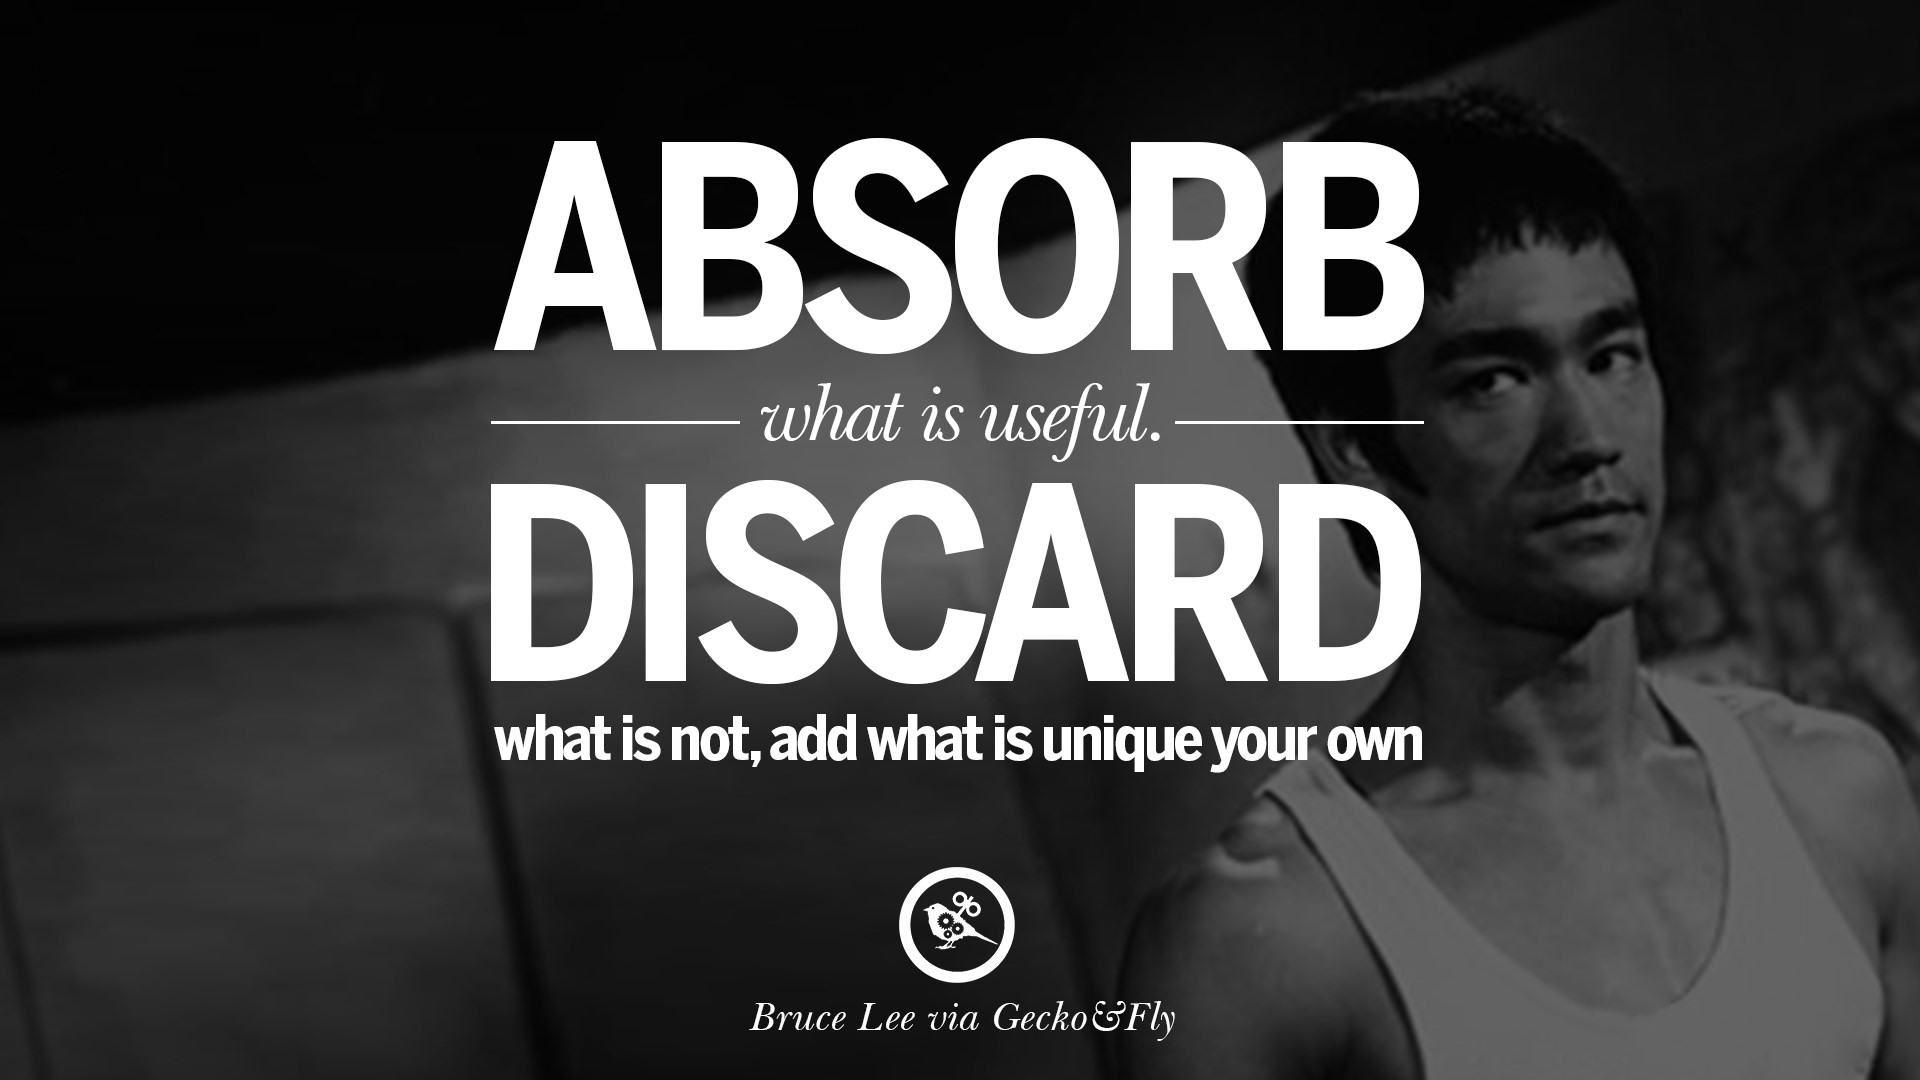 bruce lee quotes Absorb what is useful, discard what is ...